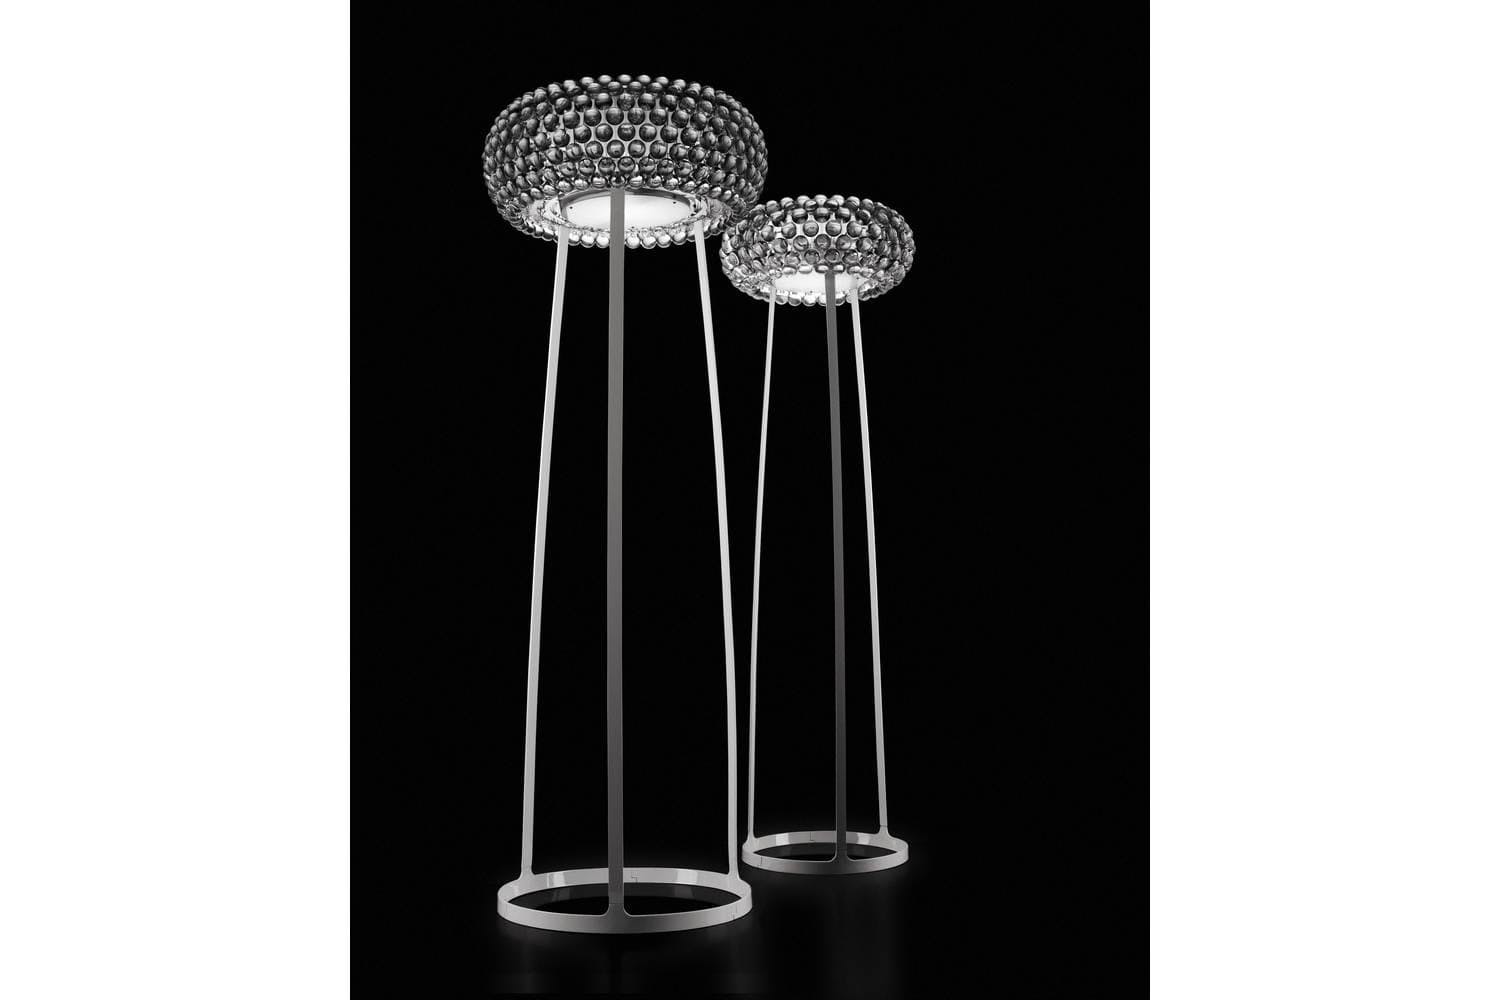 Caboche Media Floor Lamp by Patricia Urquiola & Eliana Gerotto for Foscarini